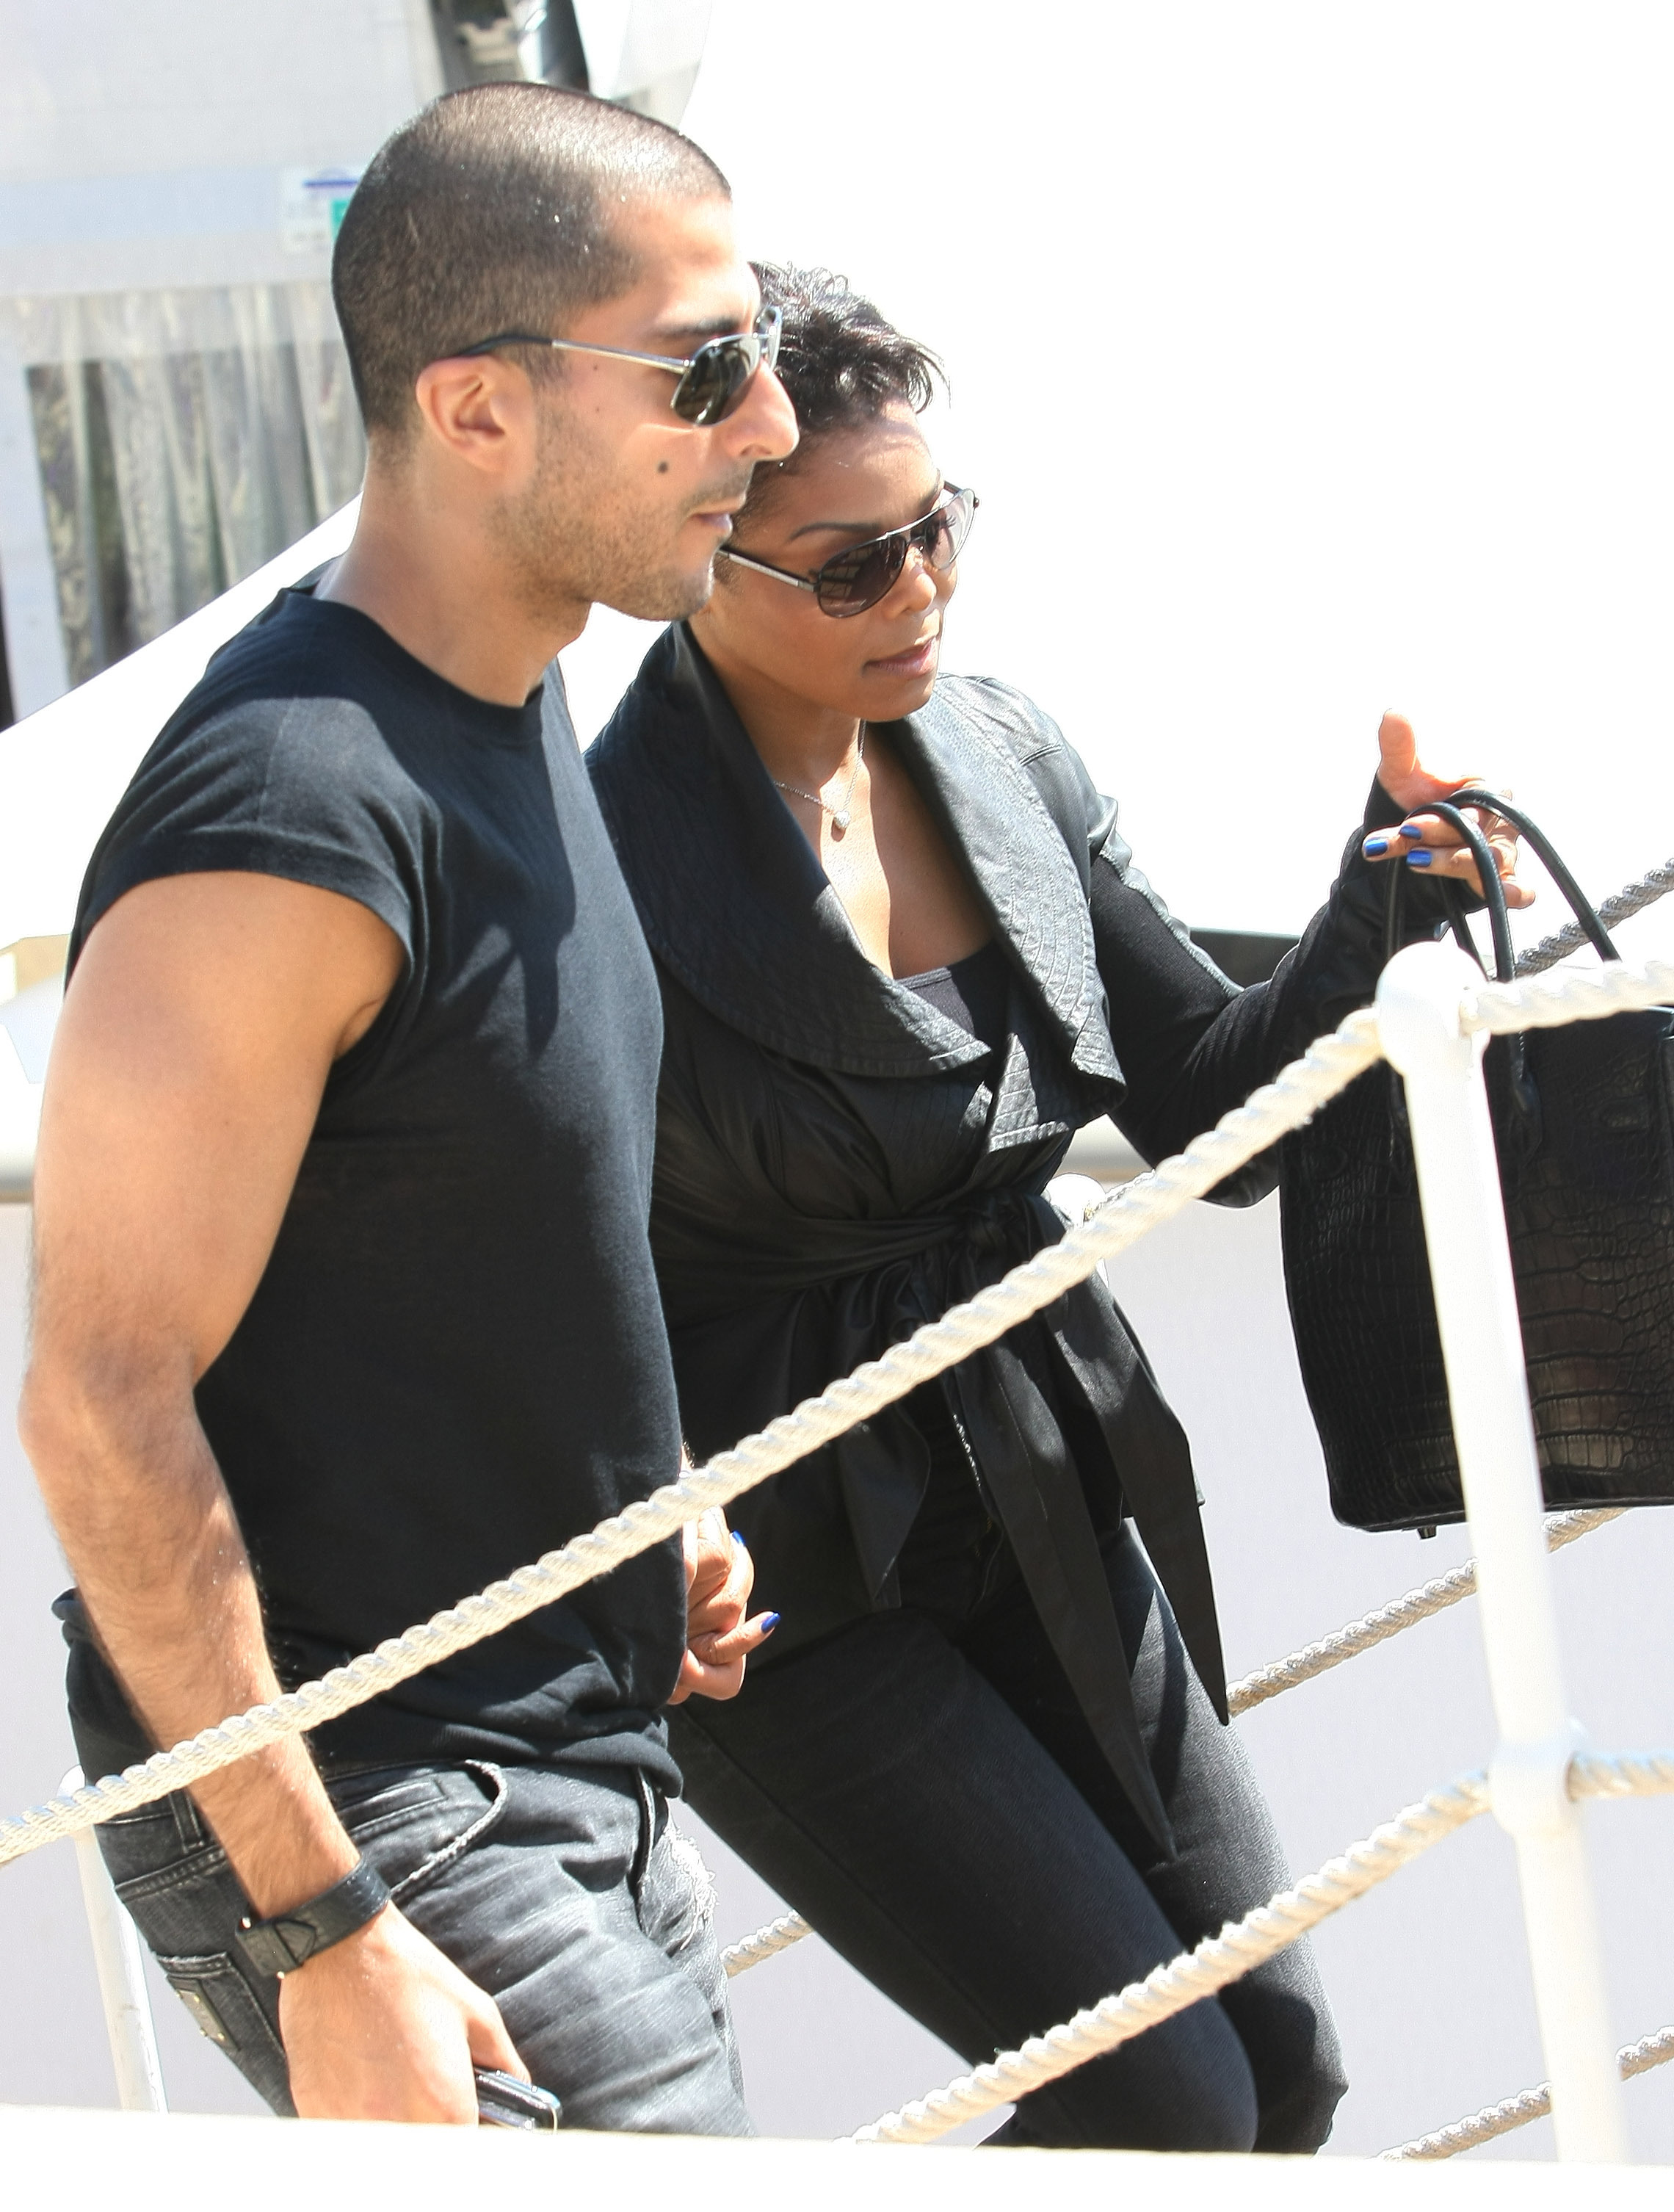 Janet Jackson and boyfriend Wissam Al Mana                  out and about during the 2011 Cannes International Film Festival - Day 10                                    Featuring: Janet Jackson and boyfriend Wissam Al Mana                  Where: Cannes, France                  When: 20 May 2011                  Credit: WENN